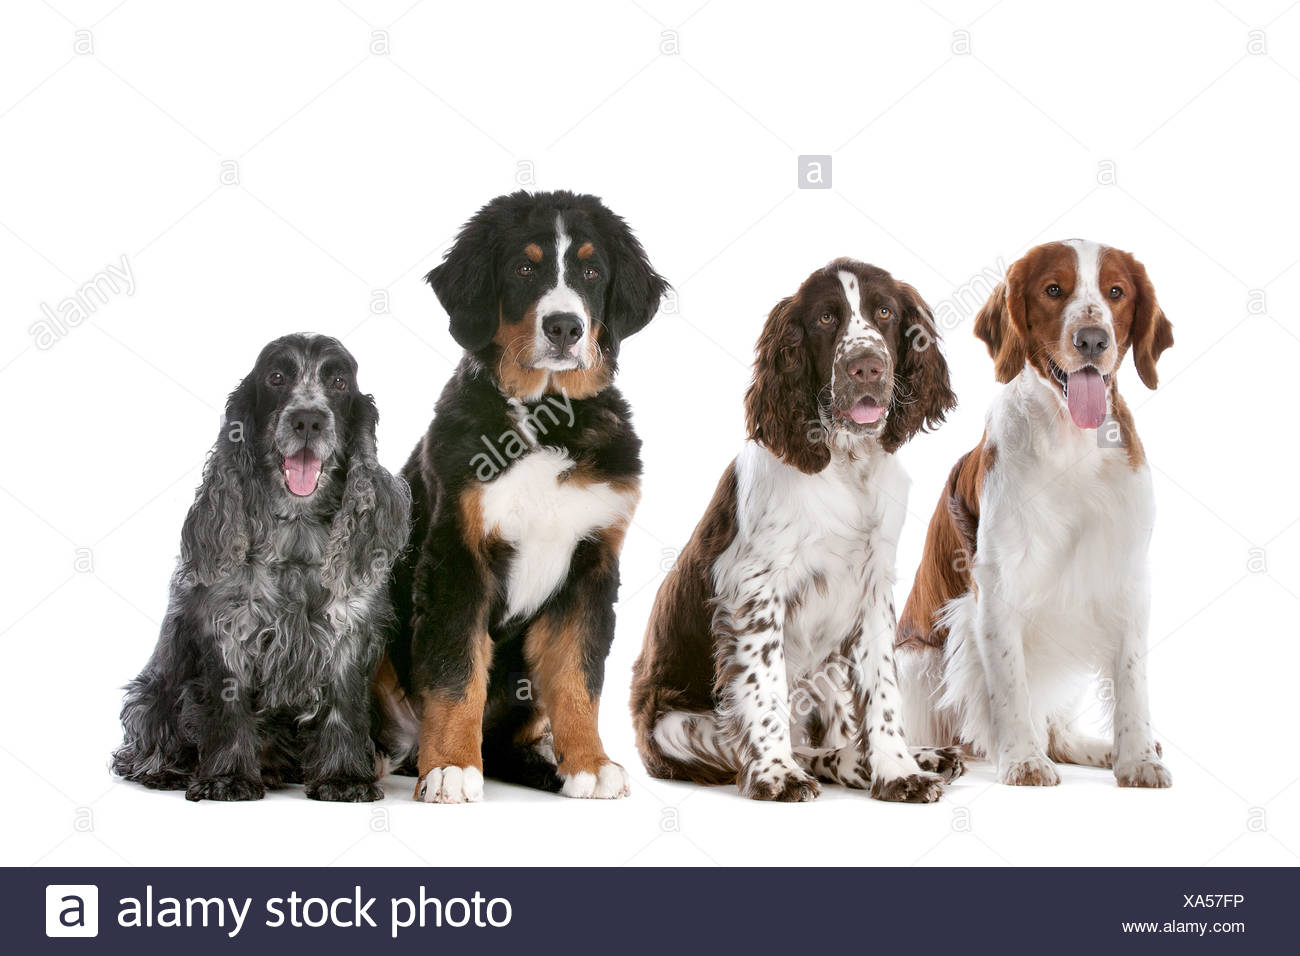 Two Springer Spaniels One Bernese Mountain Dog Puppy And A Cocker Spaniel Stock Photo Alamy